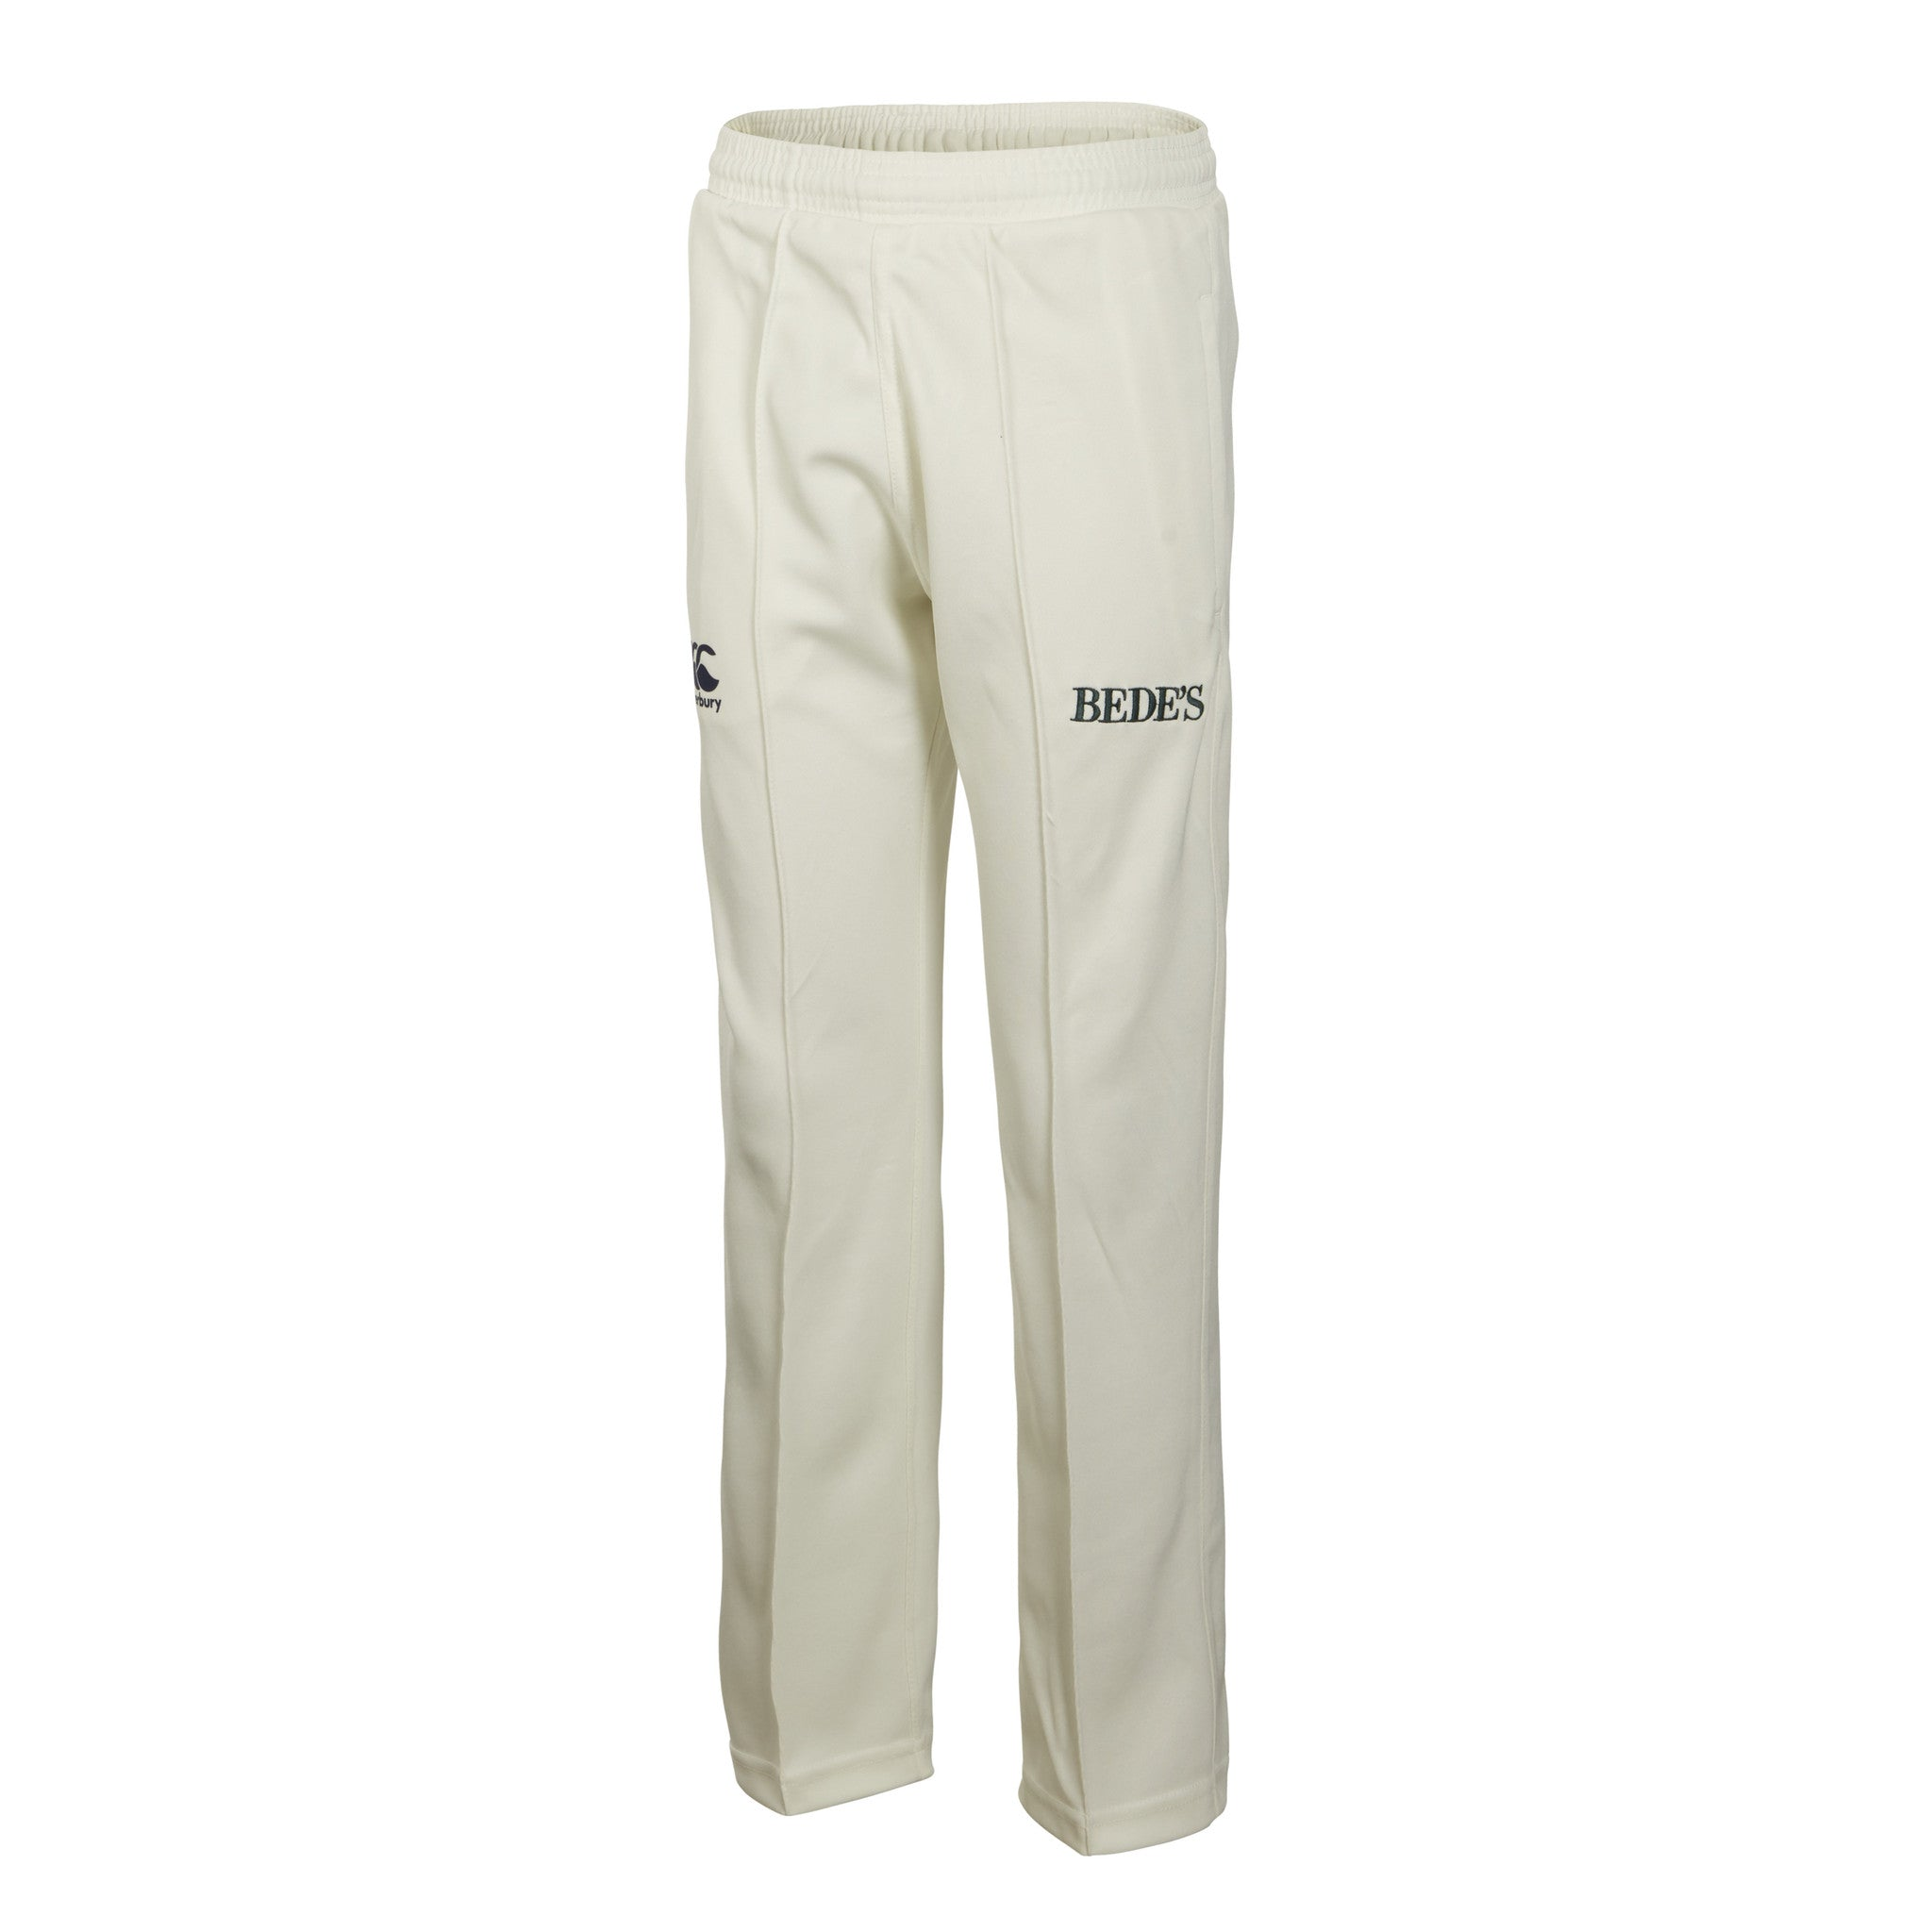 Senior Cricket Trousers